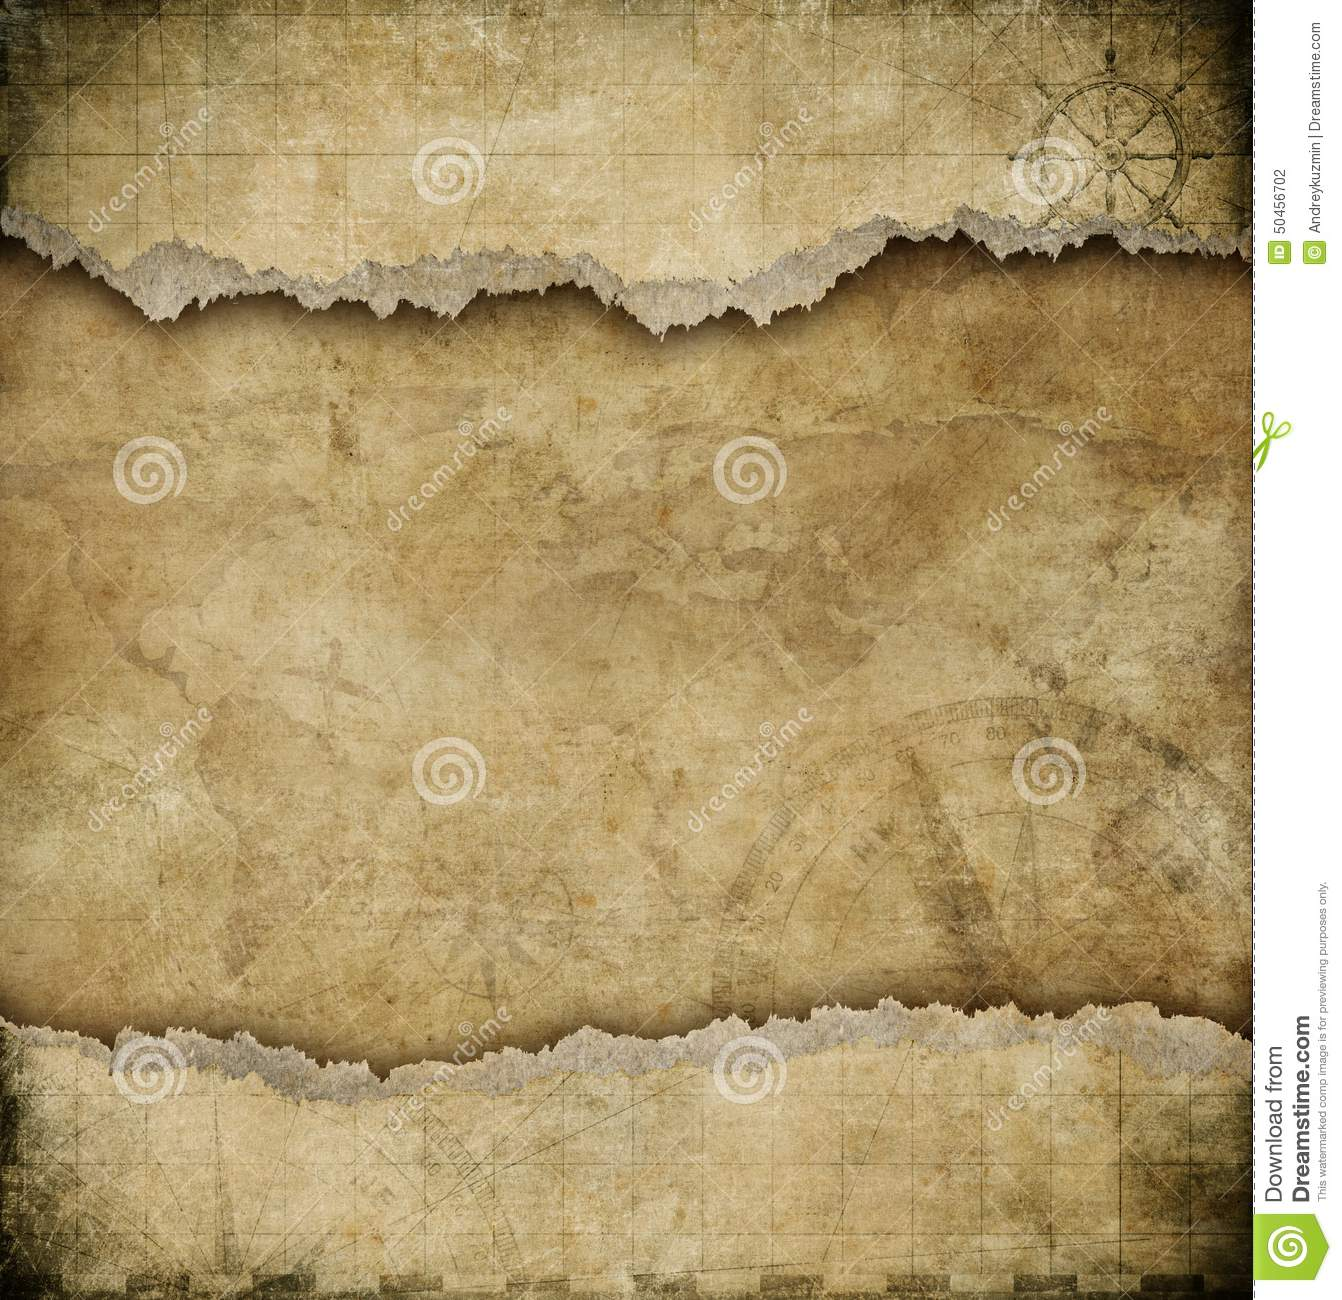 old torn paper vintage map background stock photo image